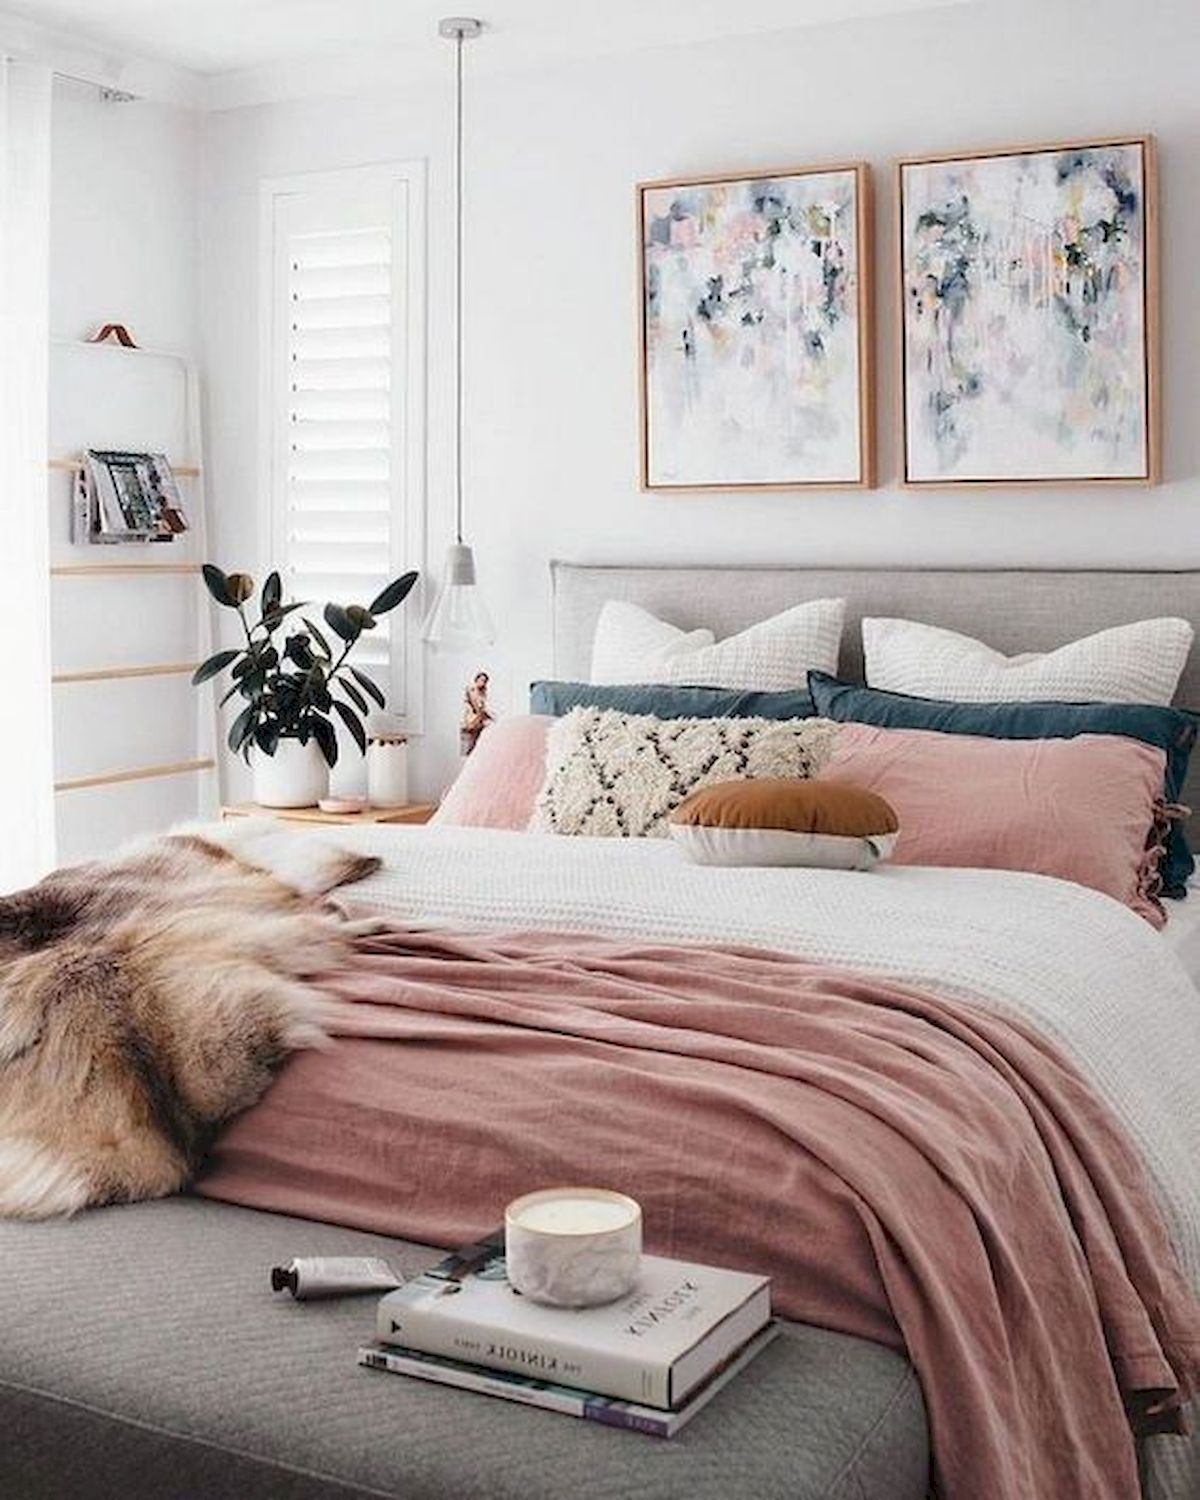 45 Awesome Small Apartment Bedroom Design And Decor Ideas (2)